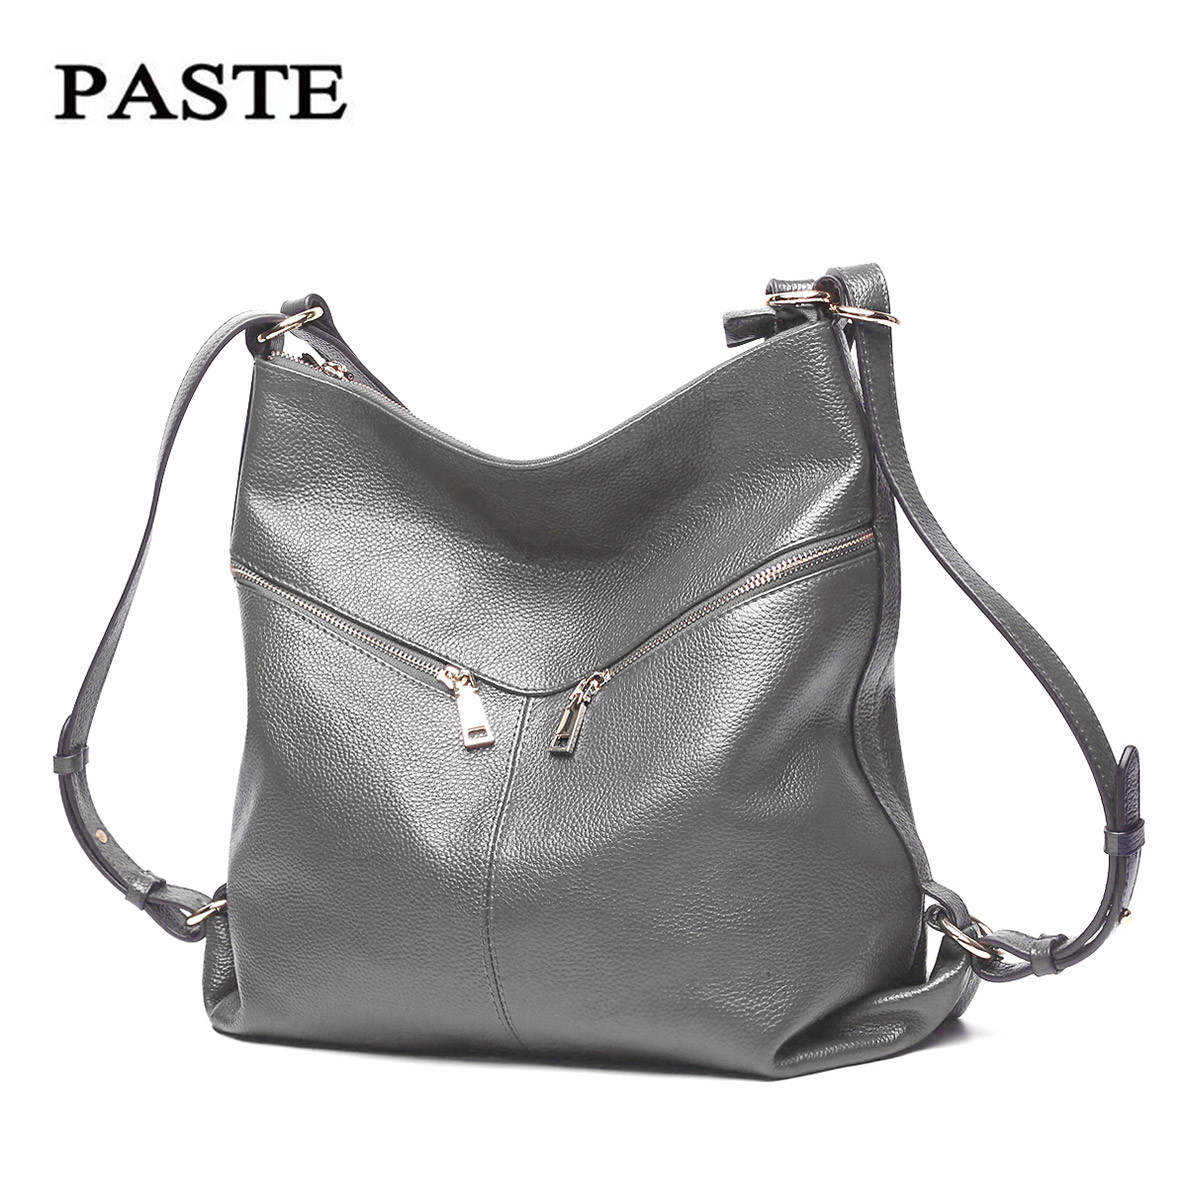 PASTE Genuine Leather Bag Women Messenger Bags for Women 2018 Vintage Cow Leather Bag designer Women Shoulder Bags Bolso Mujer aeclvr small women bags pu leather messenger bag clutch bags designer mini shoulder bag women handbag hot sale bolso mujer purse